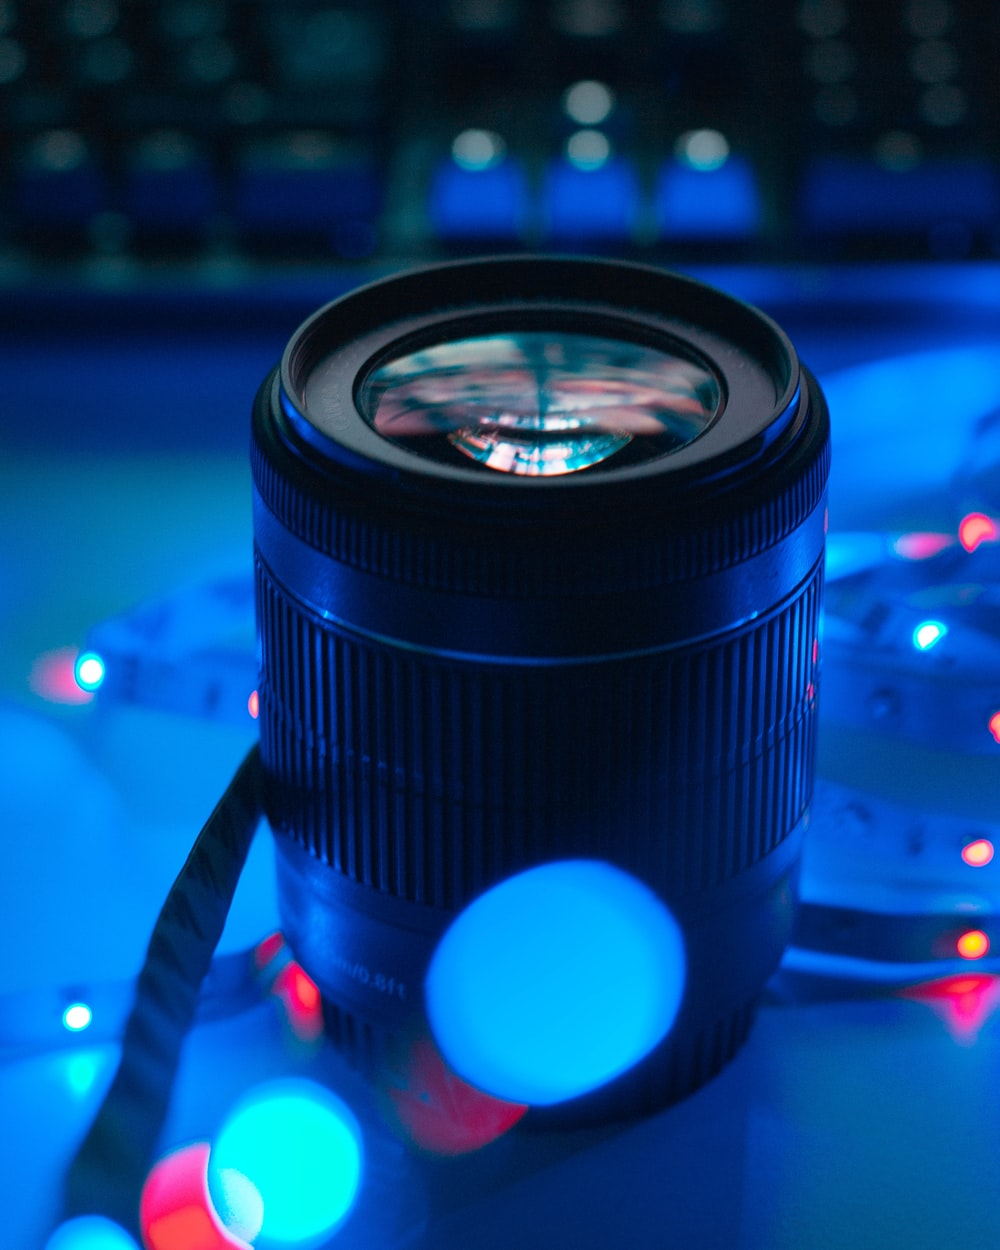 black camera lens with bokeh effect